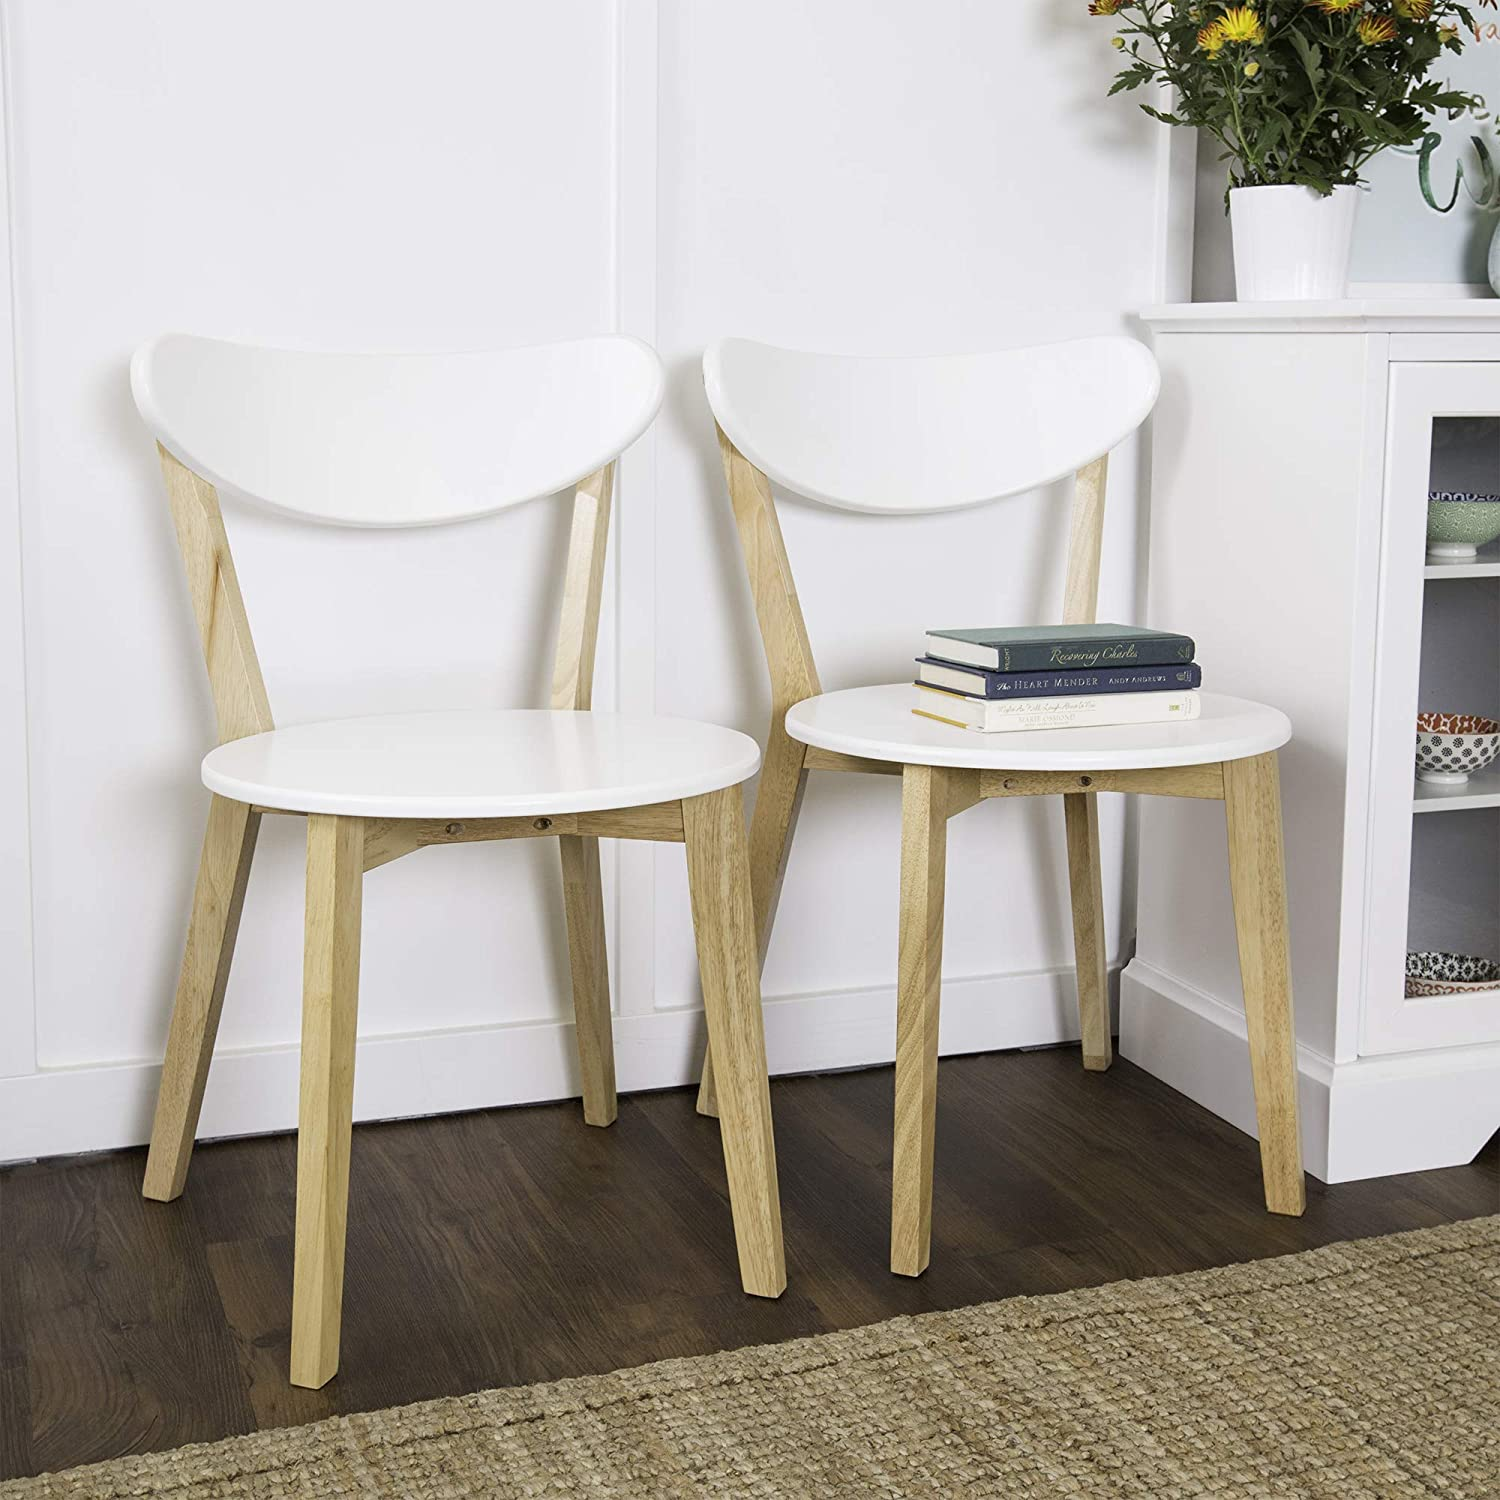 WE Furniture Retro Modern Dining Chairs - Set of 2